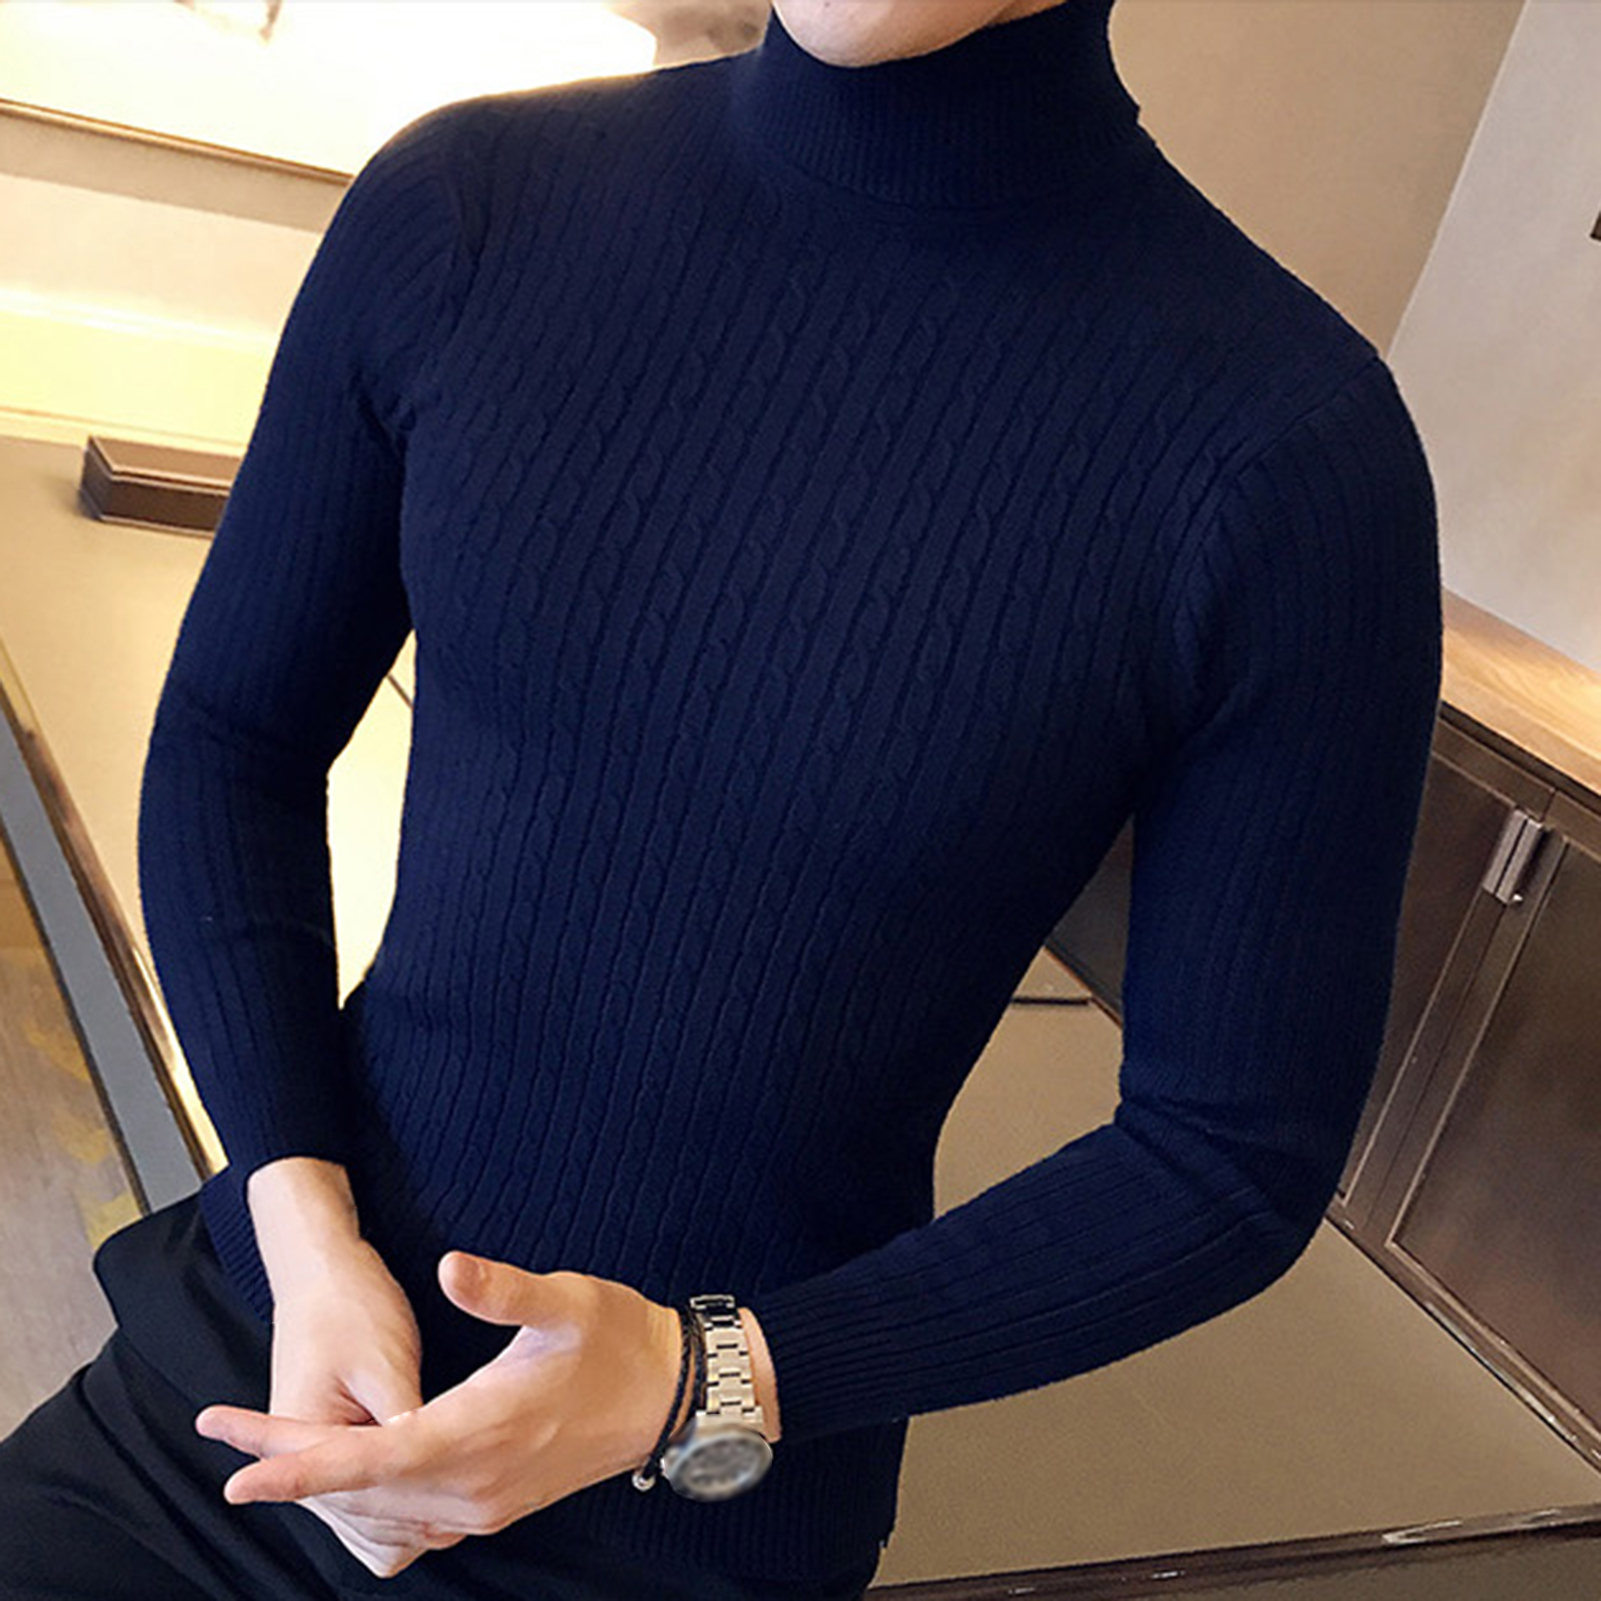 2020 New Autumn Winter Men'S sweater Men's Turtleneck Solid Color Casual Sweater Men's Slim-Fit Knitted Pullovers 4